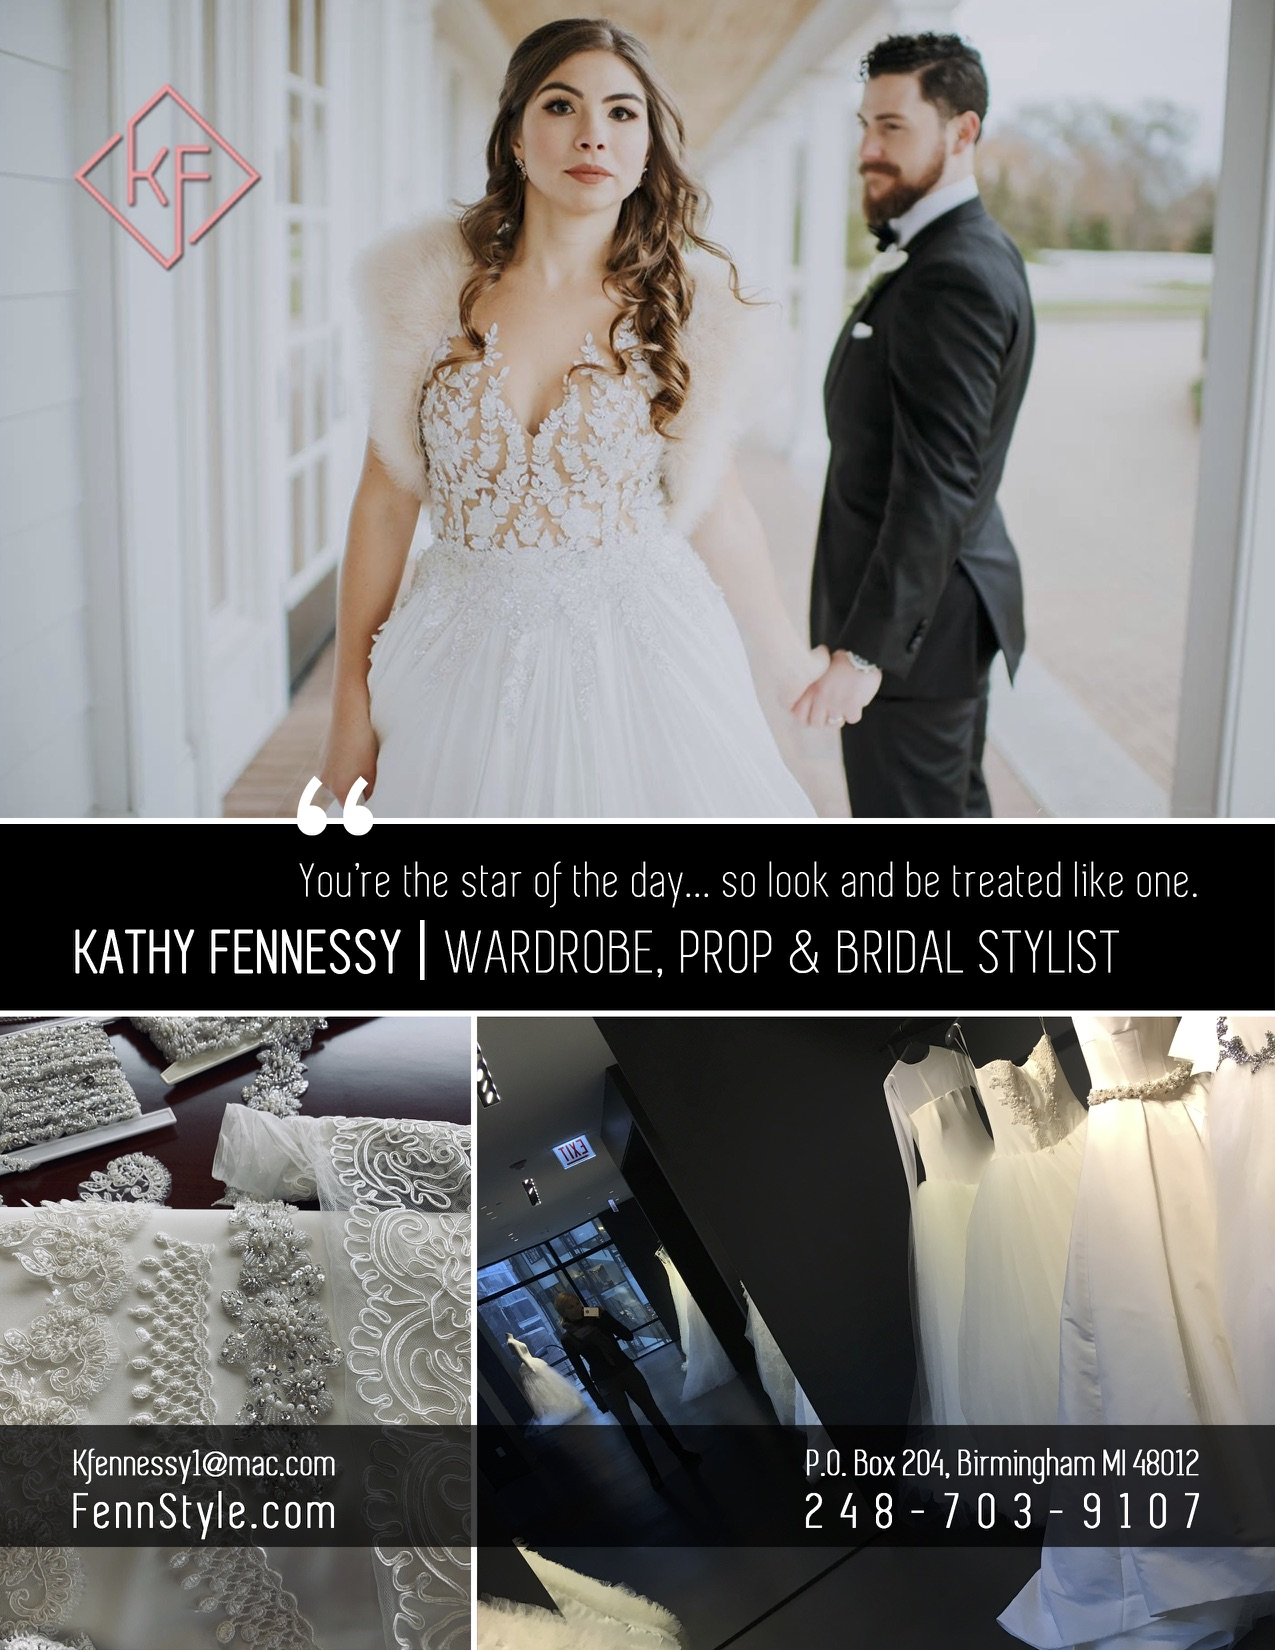 PERSONAL STYLING/BRIDAL WARDROBE CONSULTANT  The WEDDING day is a great fashion moment. We help those brides find that perfect dress & help those grooms sport the perfect cohesive suit or tux to look and feel like a celebrity couple. I can also offer to work with your photographer to help make each photo/video look flawless on the big day with an On-site Stylist to assist. Onsite services also include Steaming dresses, suits, veil, pin, sew, tape & hem if necessary and deals with any other wardrobe needs to make everyone feel comfortable.  PERSONAL STYLING/SHOPPING or just fashion advice?....I love outfit creation to make you look and feel amazing for work, special event, or for your everyday lifestyle.